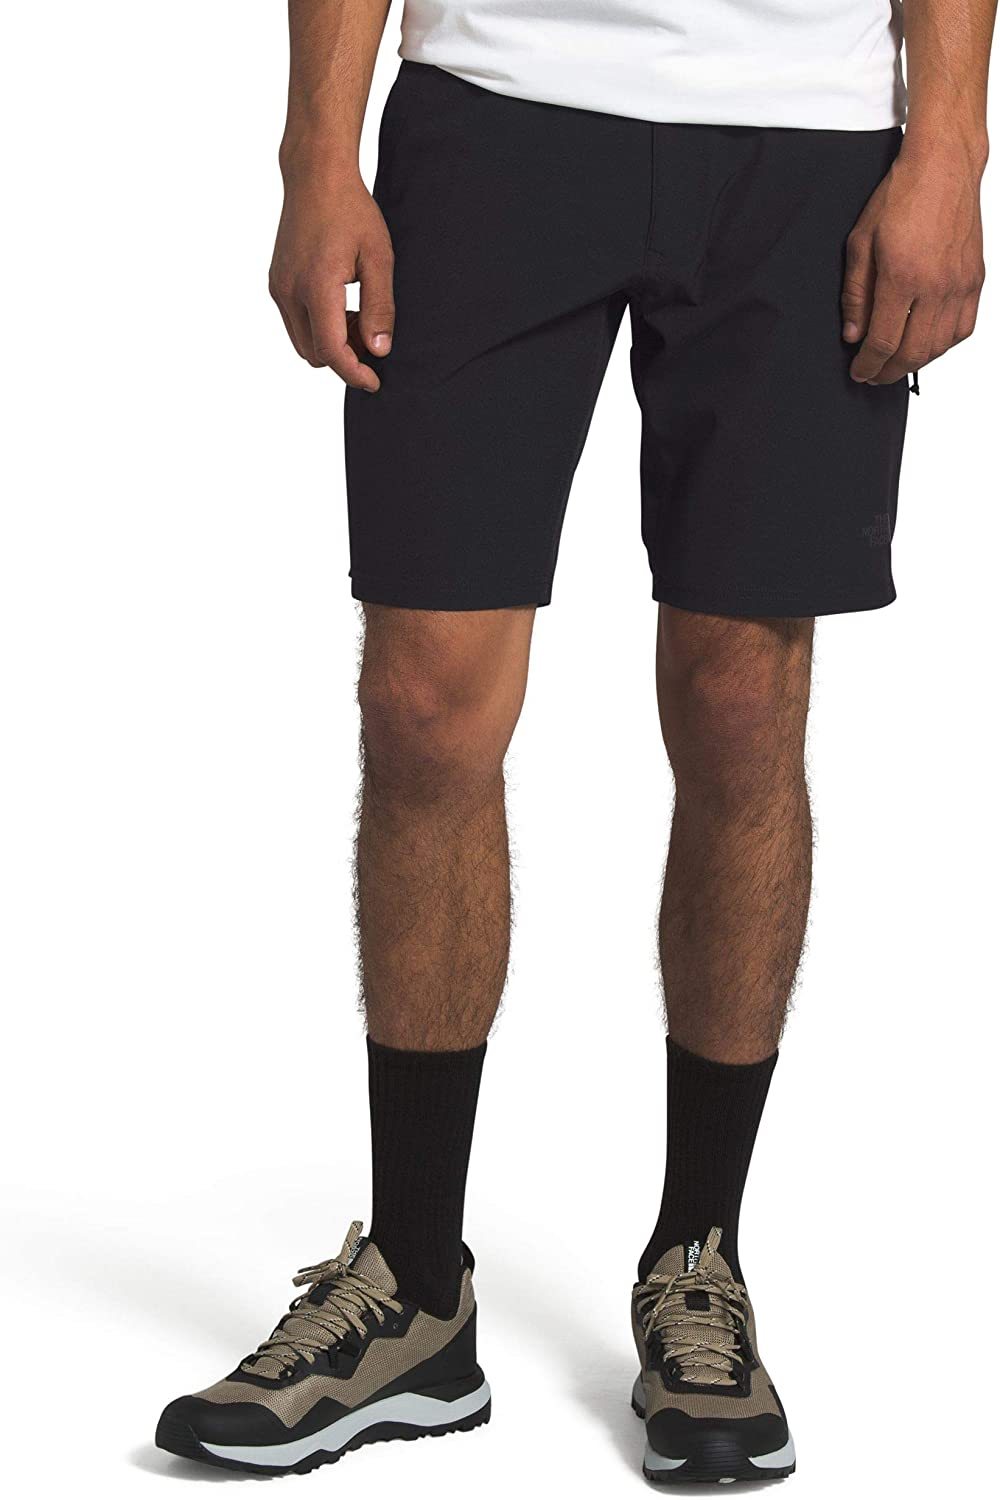 The North Face Men's Rolling Sun 36 Short OFFicial site Quantity limited Packable Black TNF